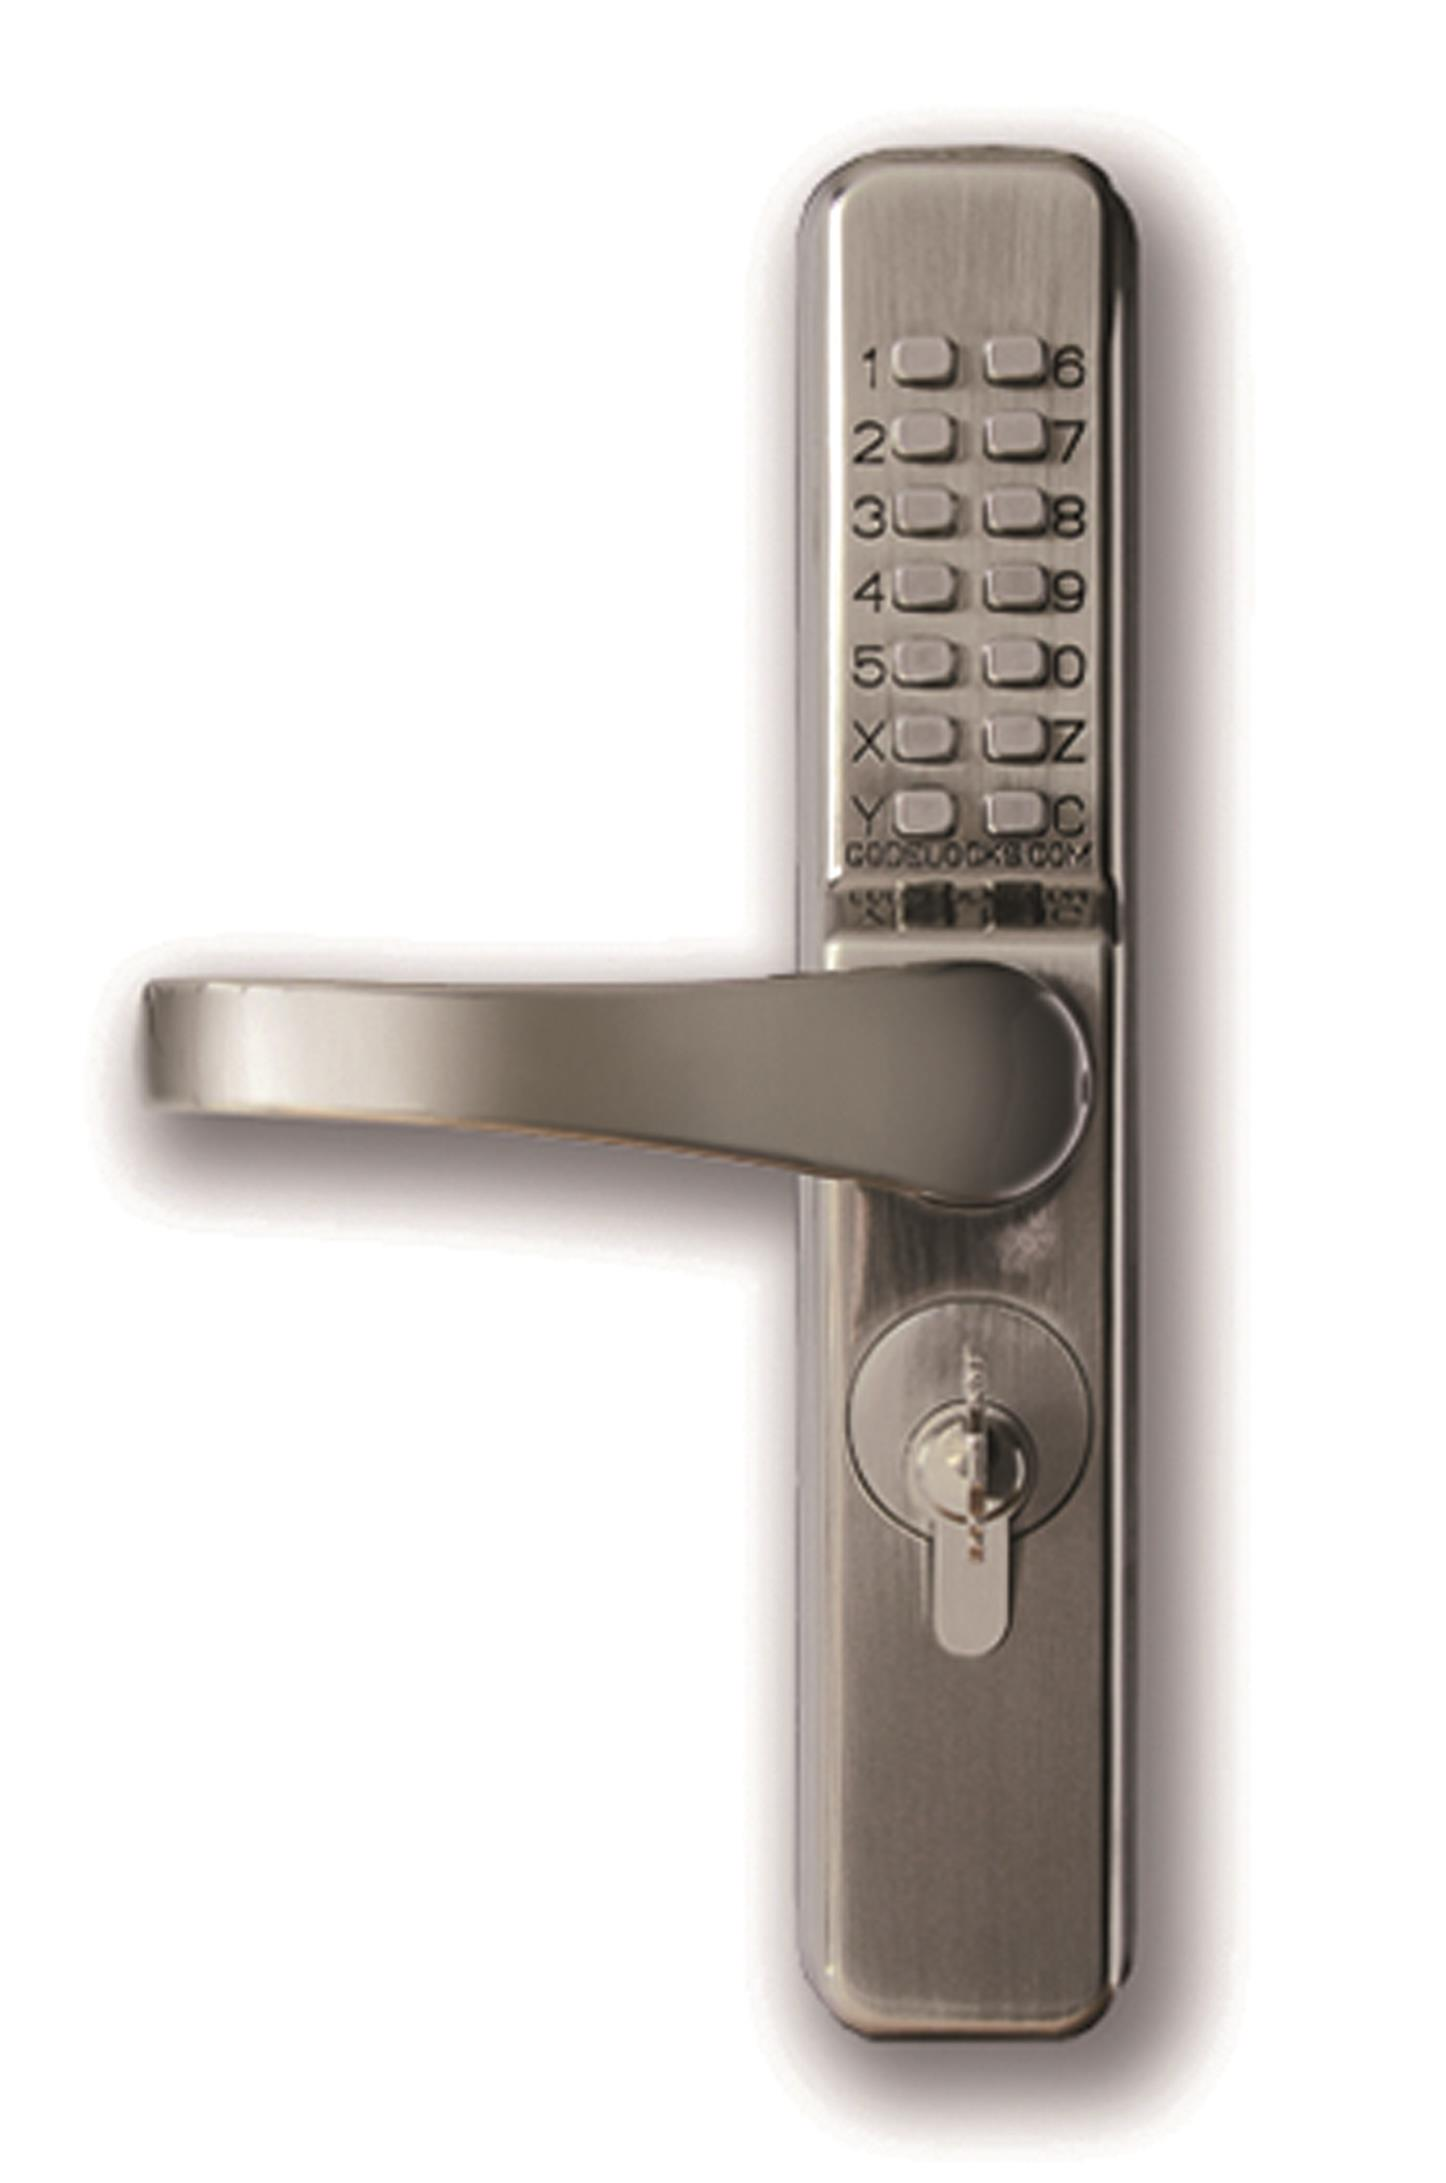 Codelock - Mechanical Access Control for Aluminium Doors